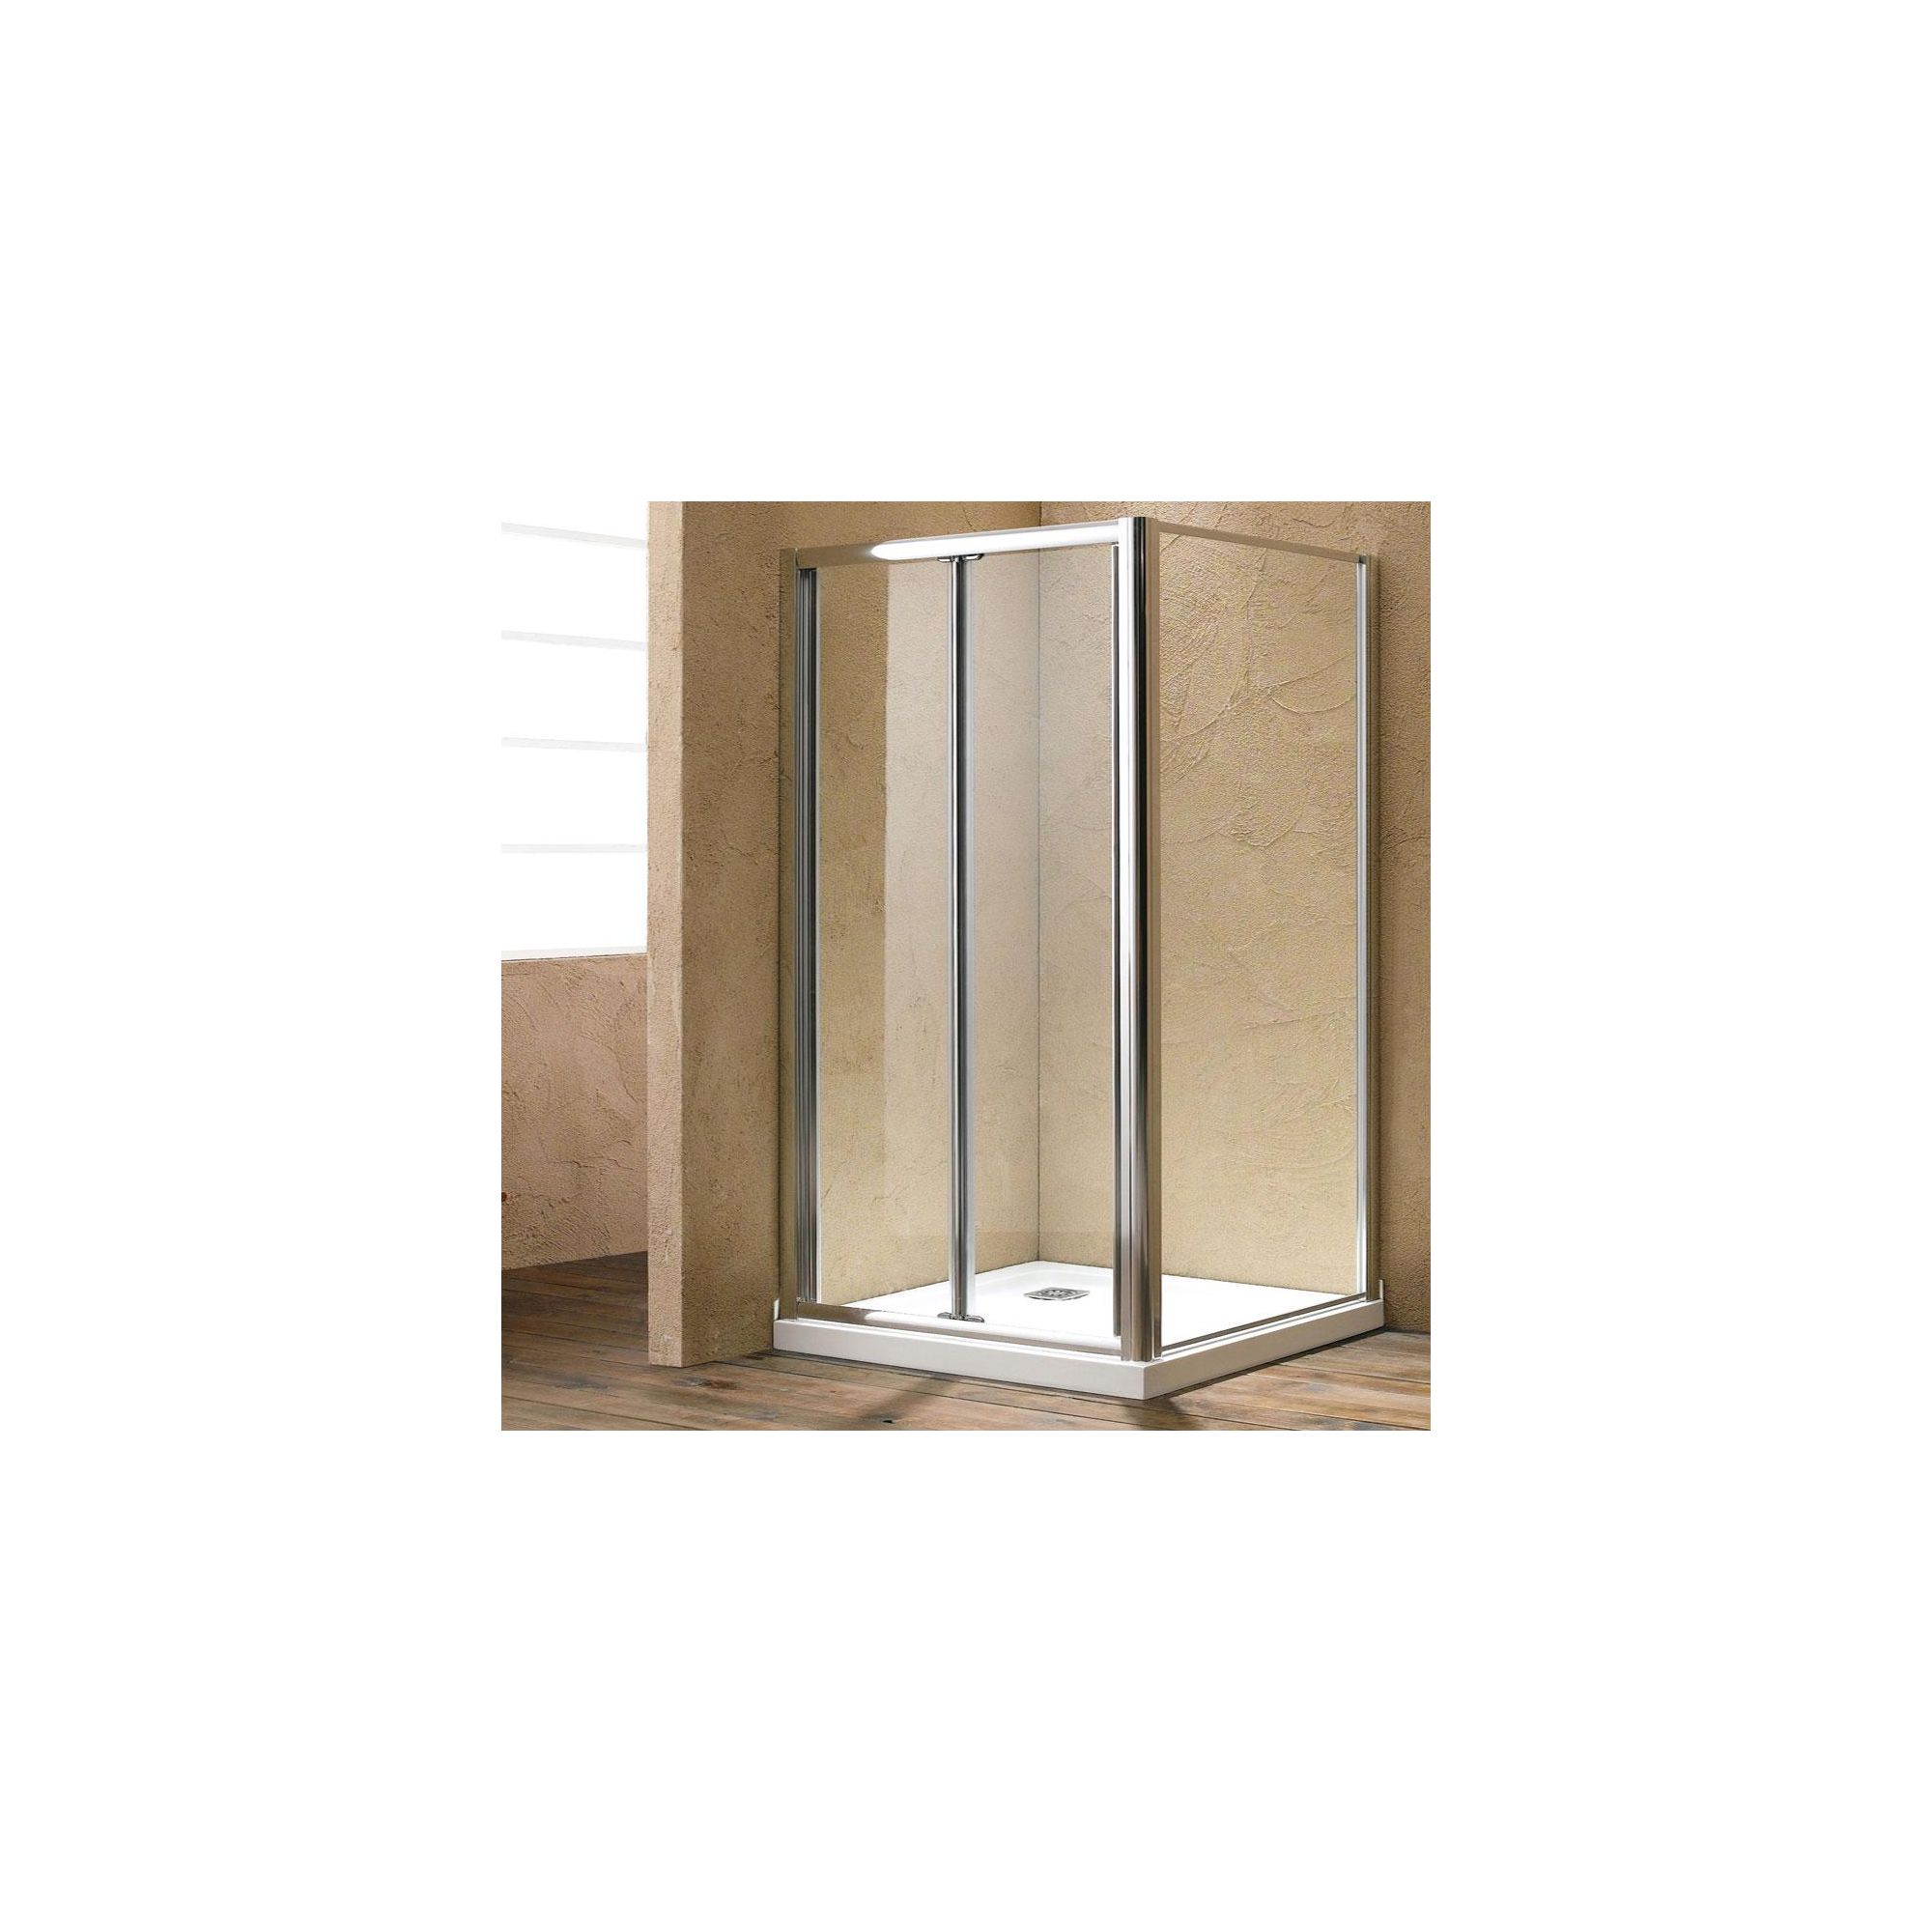 Duchy Style Twin Bi-Fold Door Shower Enclosure, 1000mm x 900mm, 6mm Glass, Low Profile Tray at Tesco Direct